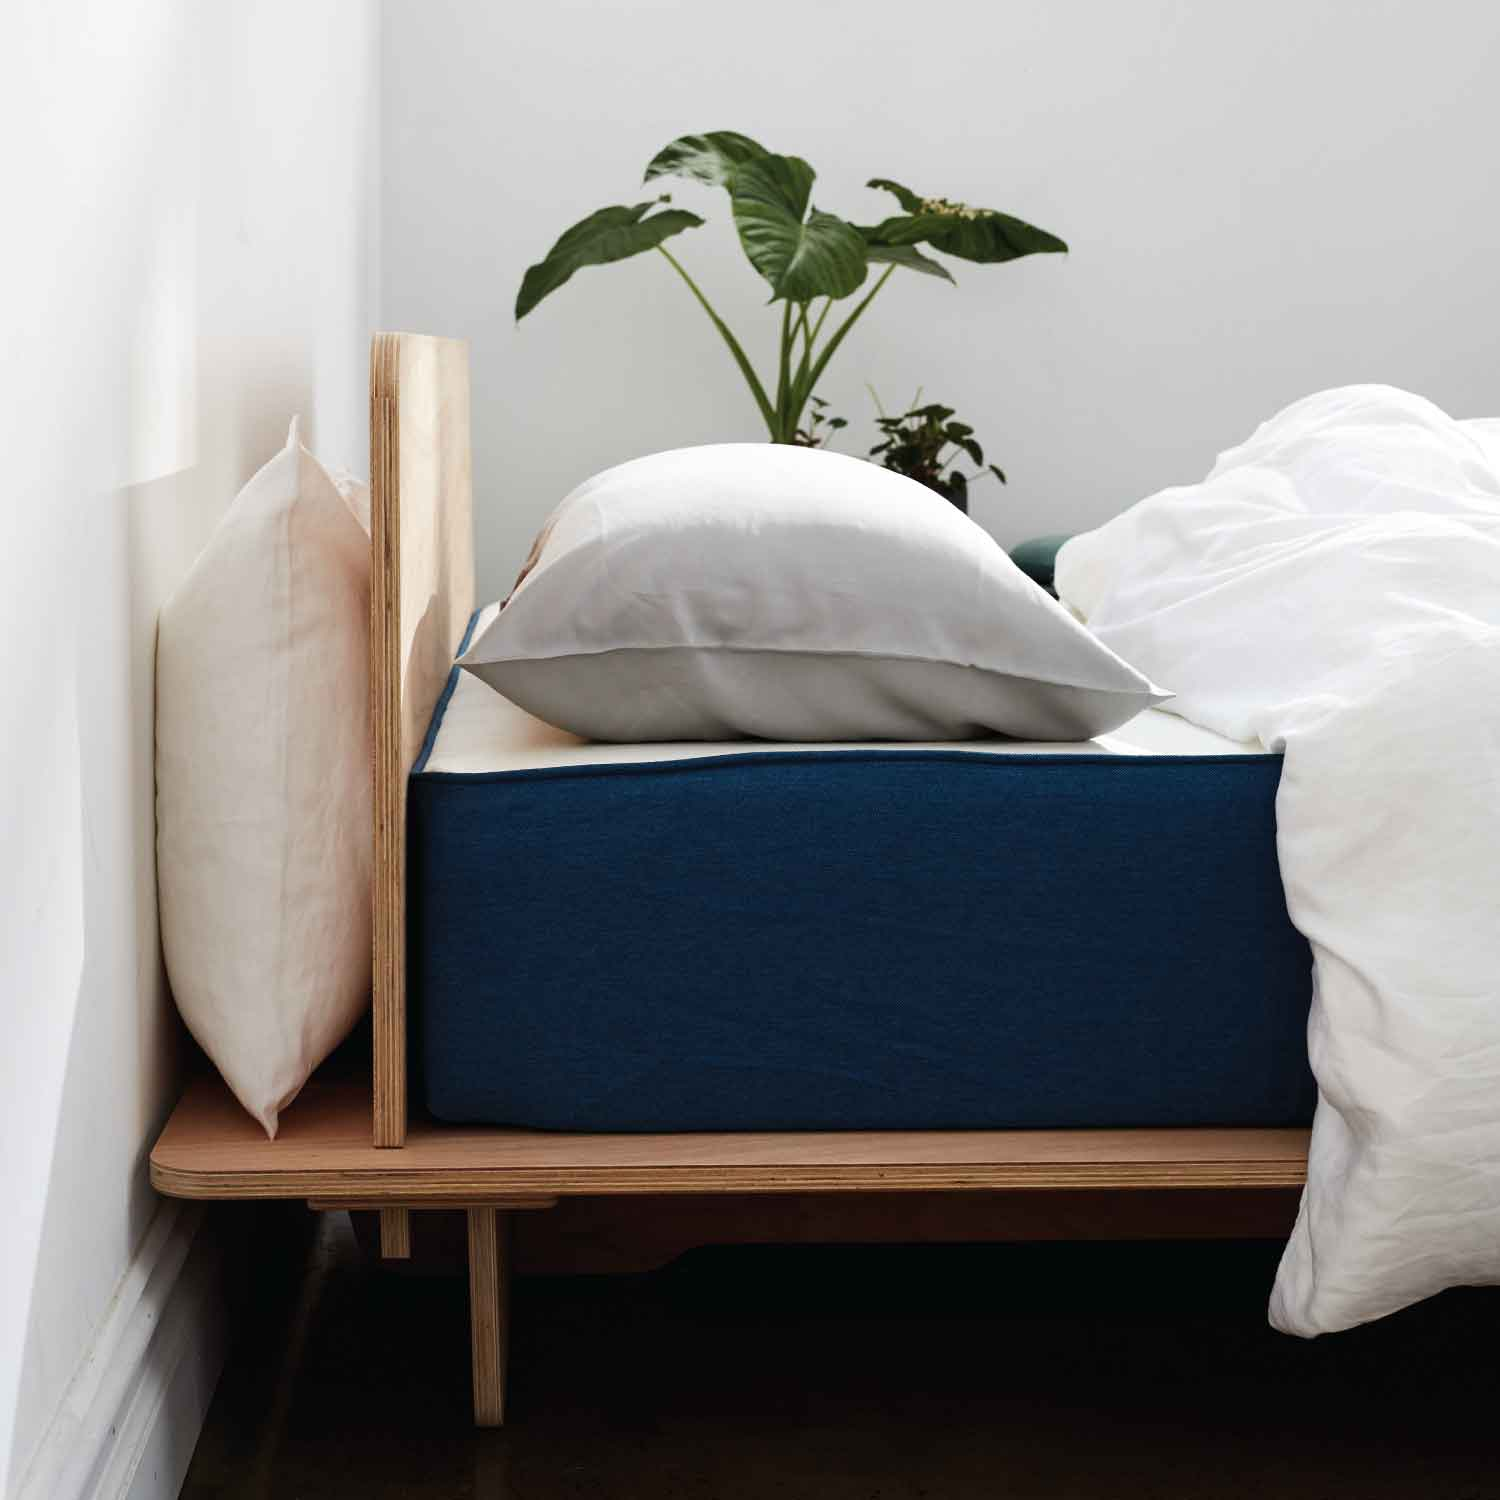 The Koala mattress on plywood bed frame